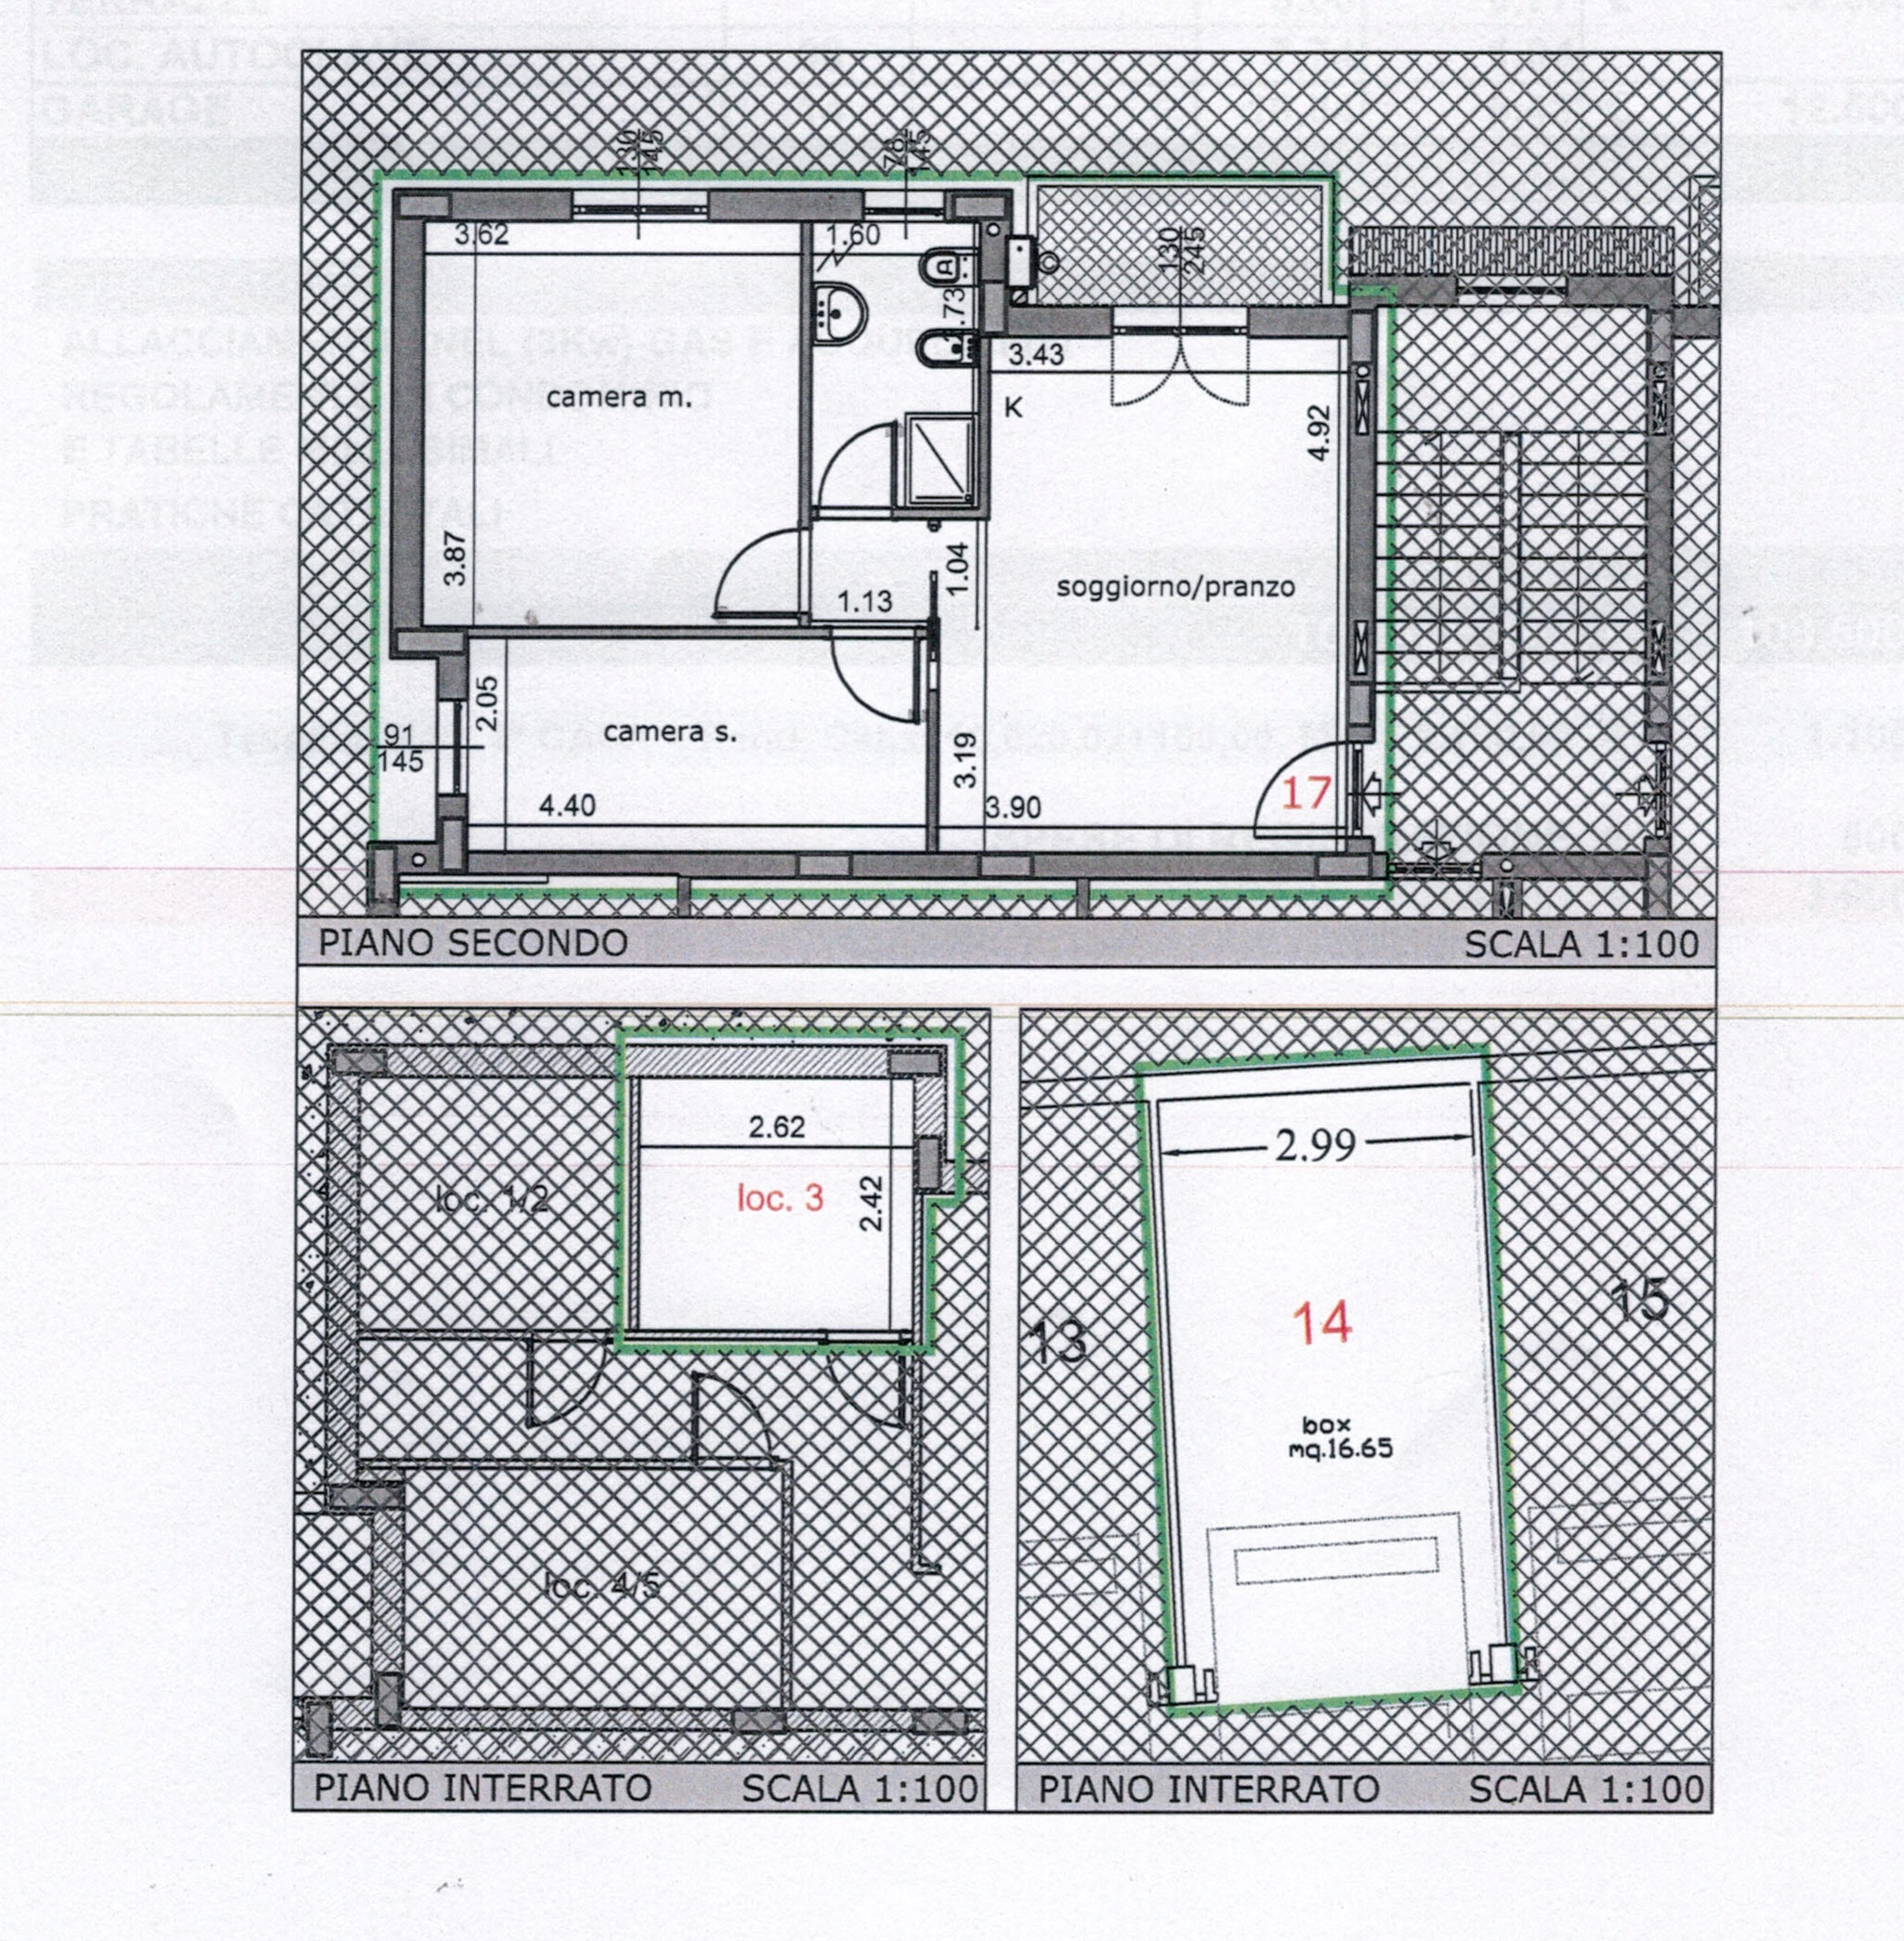 Plan 3/4 for ref. 842